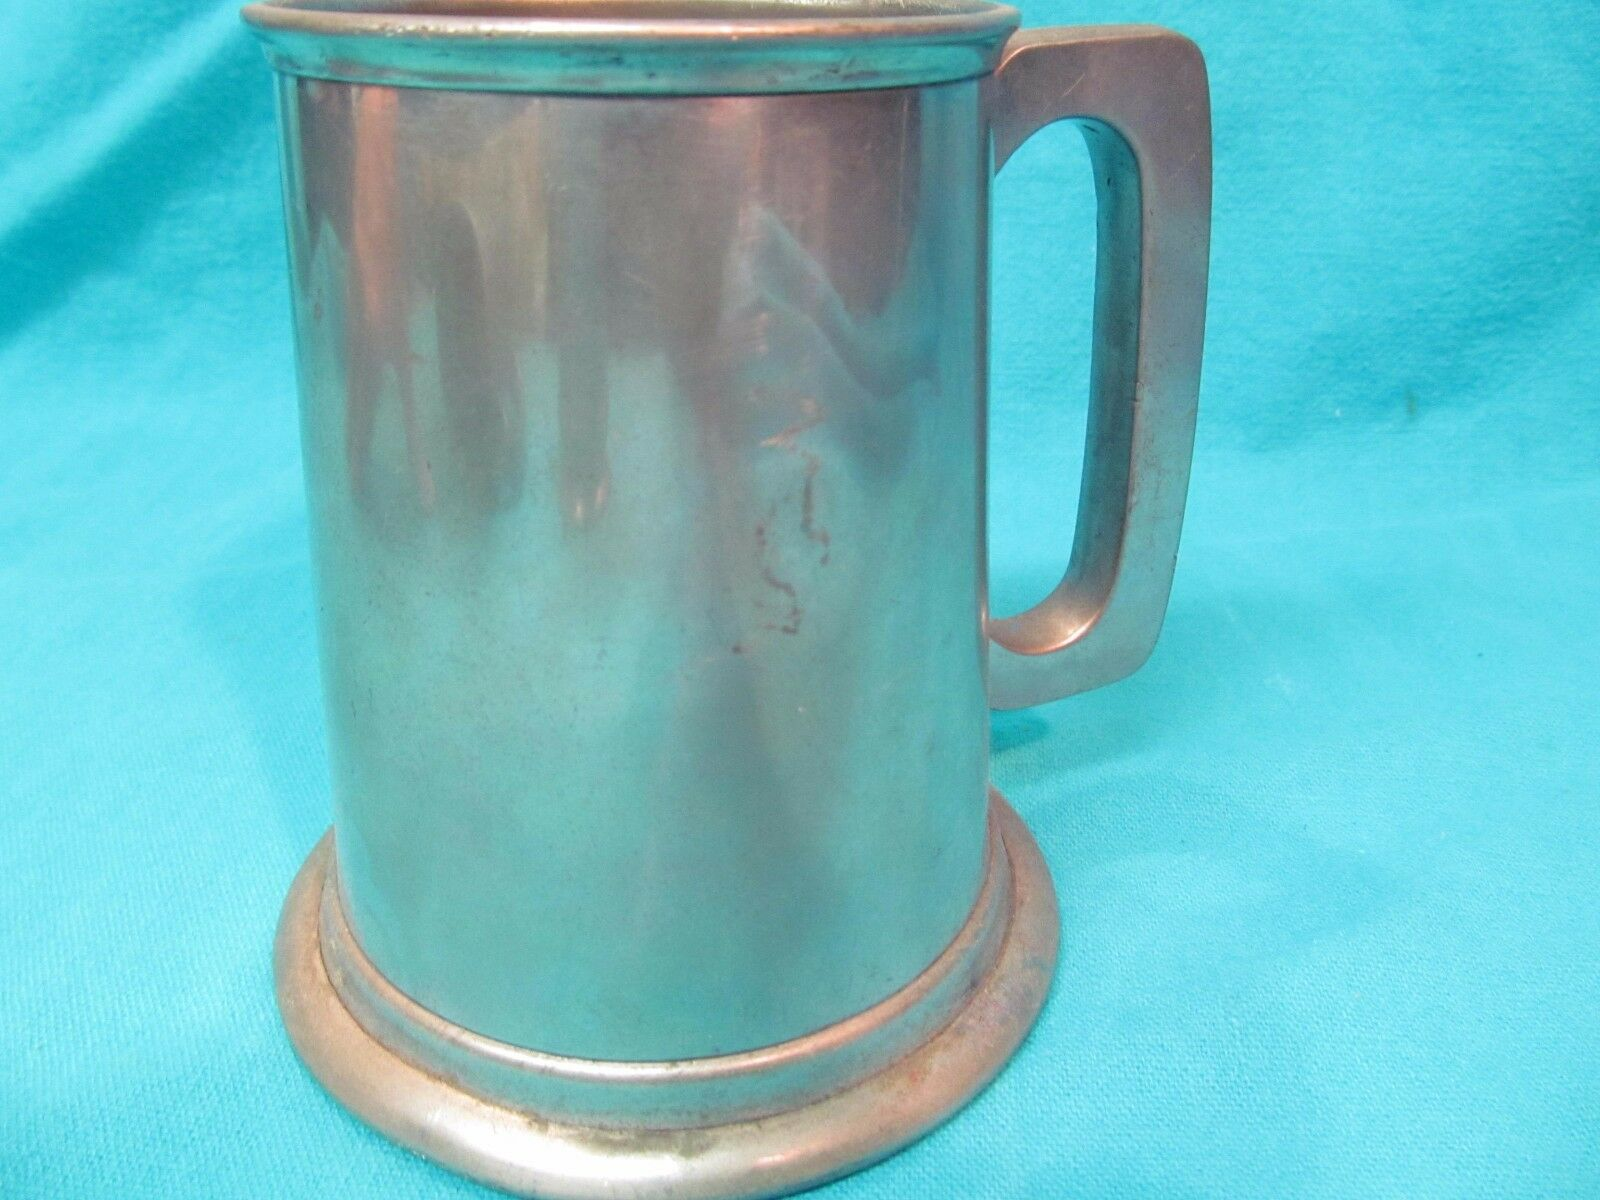 HINERS SHEFFIELD ENGLAND PEWTER TAVERN MUG 1961 AETNA INSURANCE BIG TOP